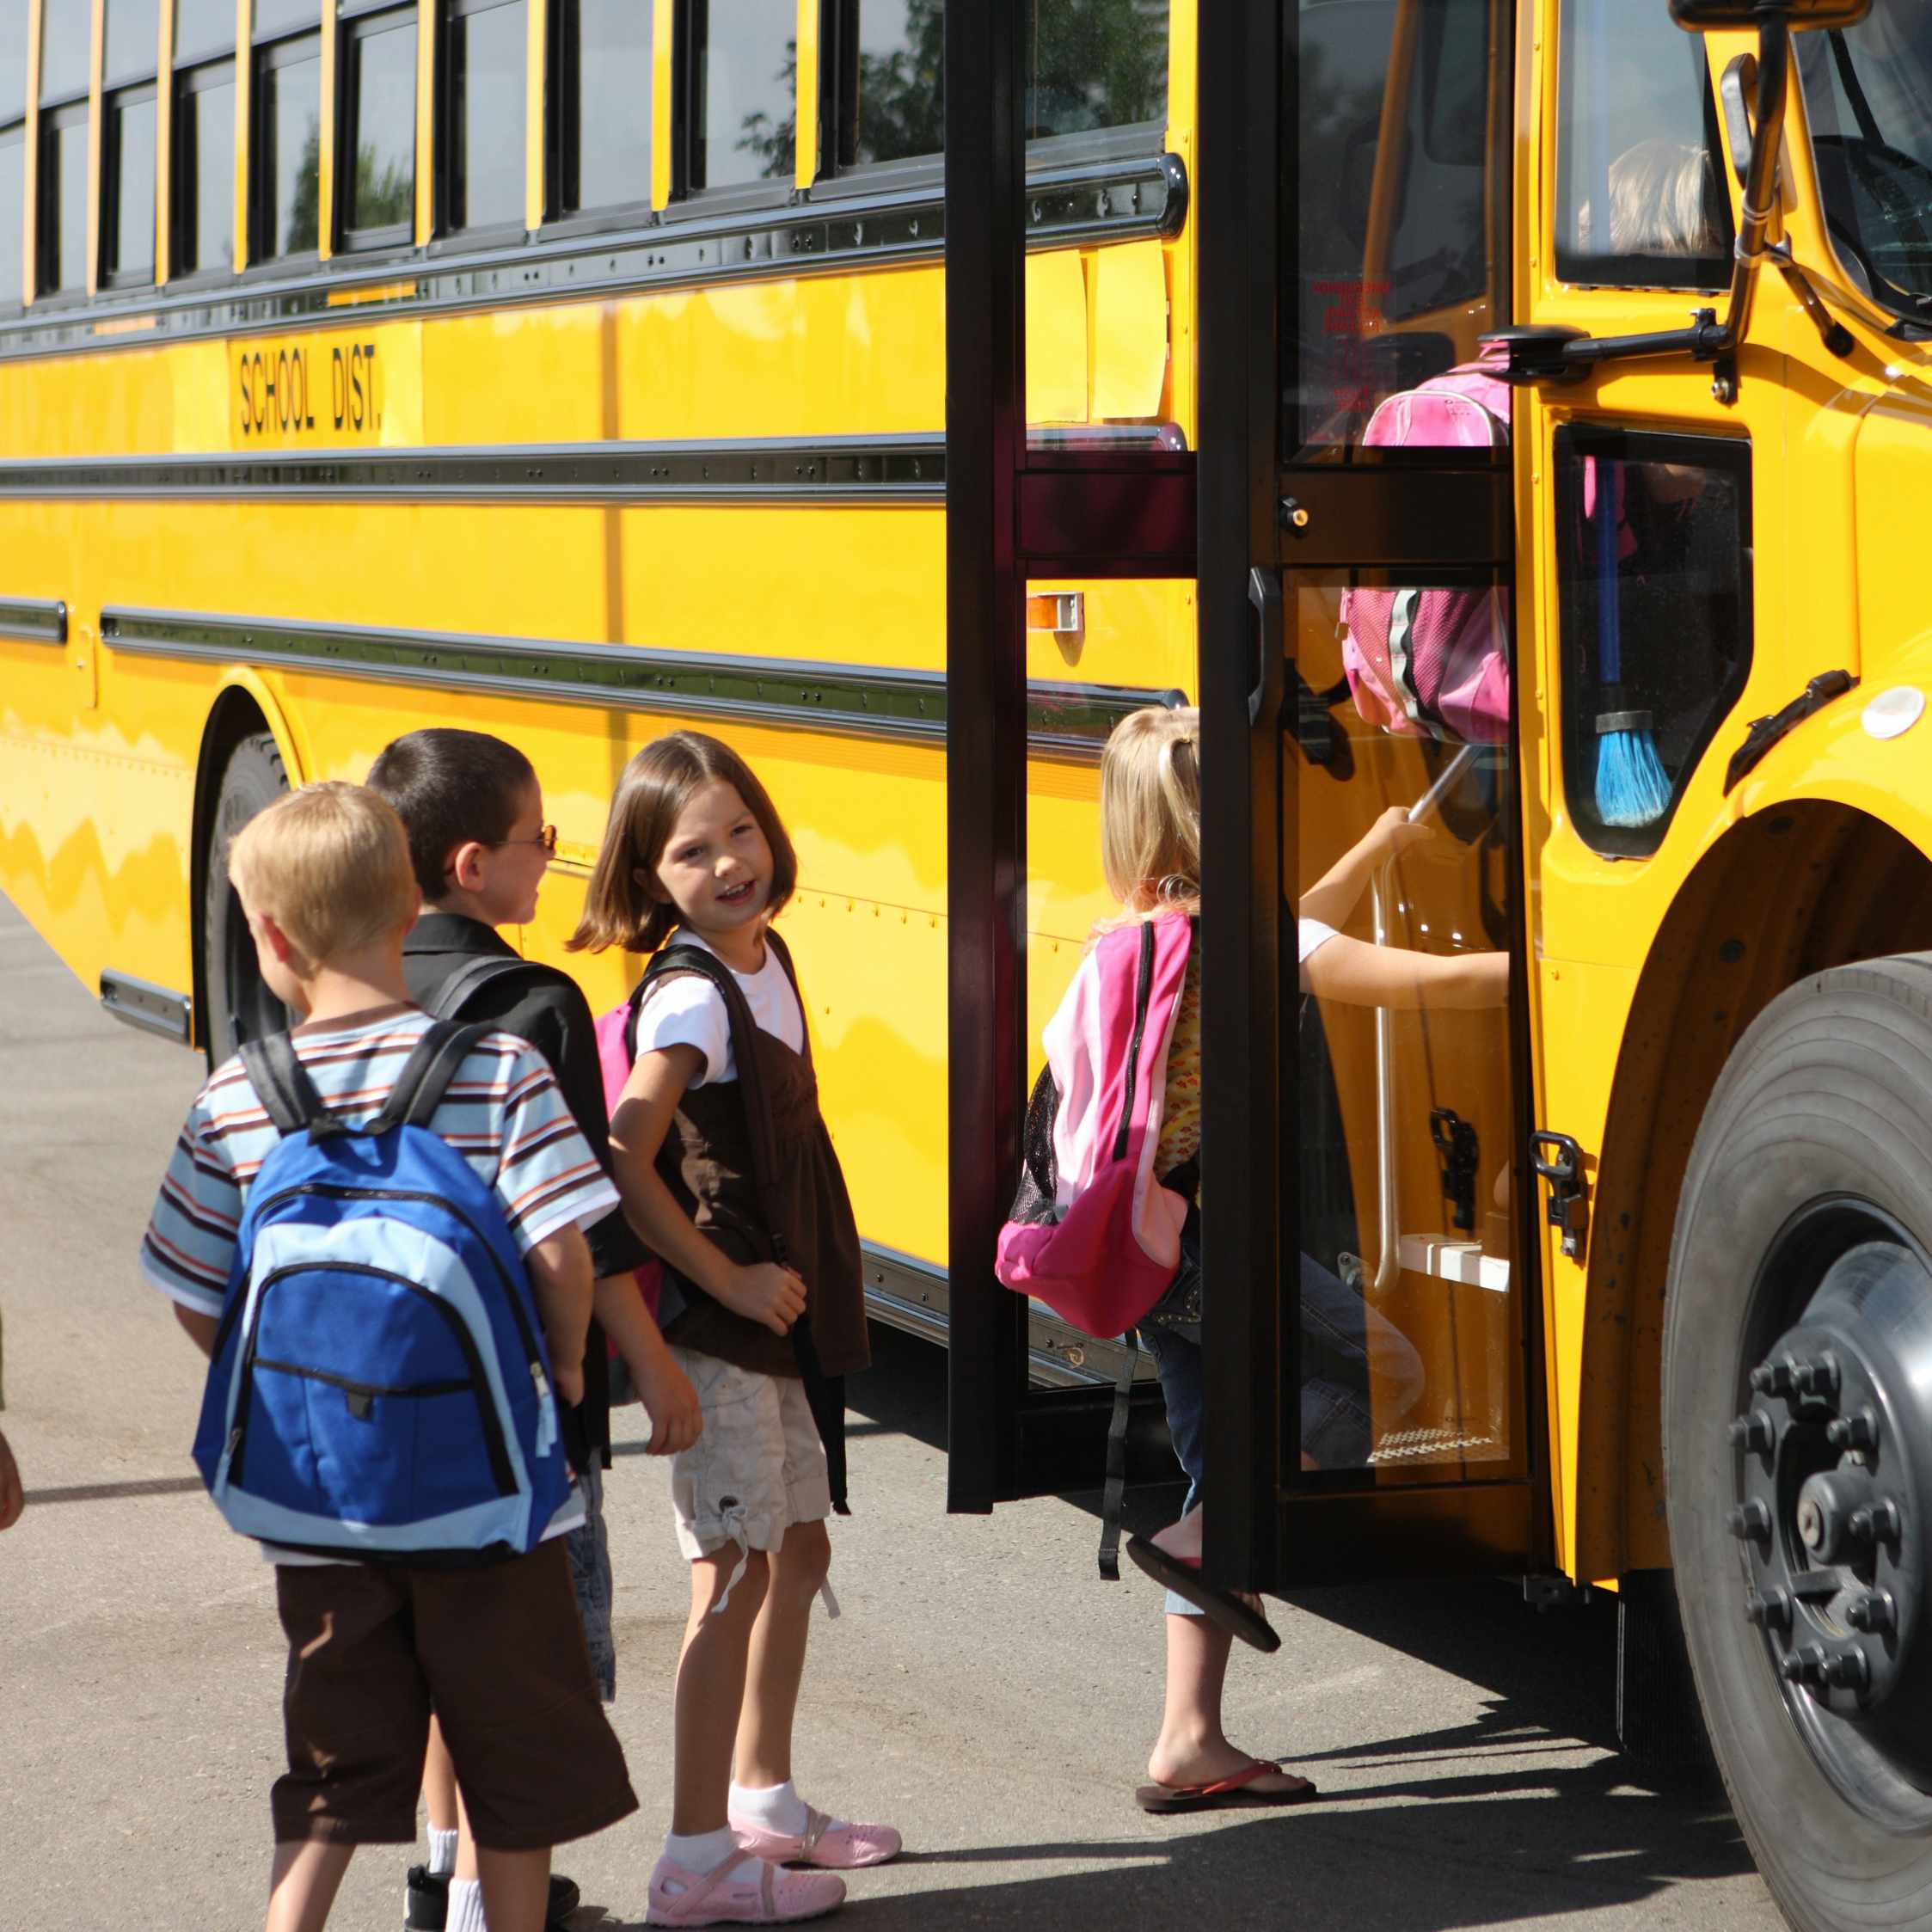 a group of young elementary school children with backpacks, getting on a school bus